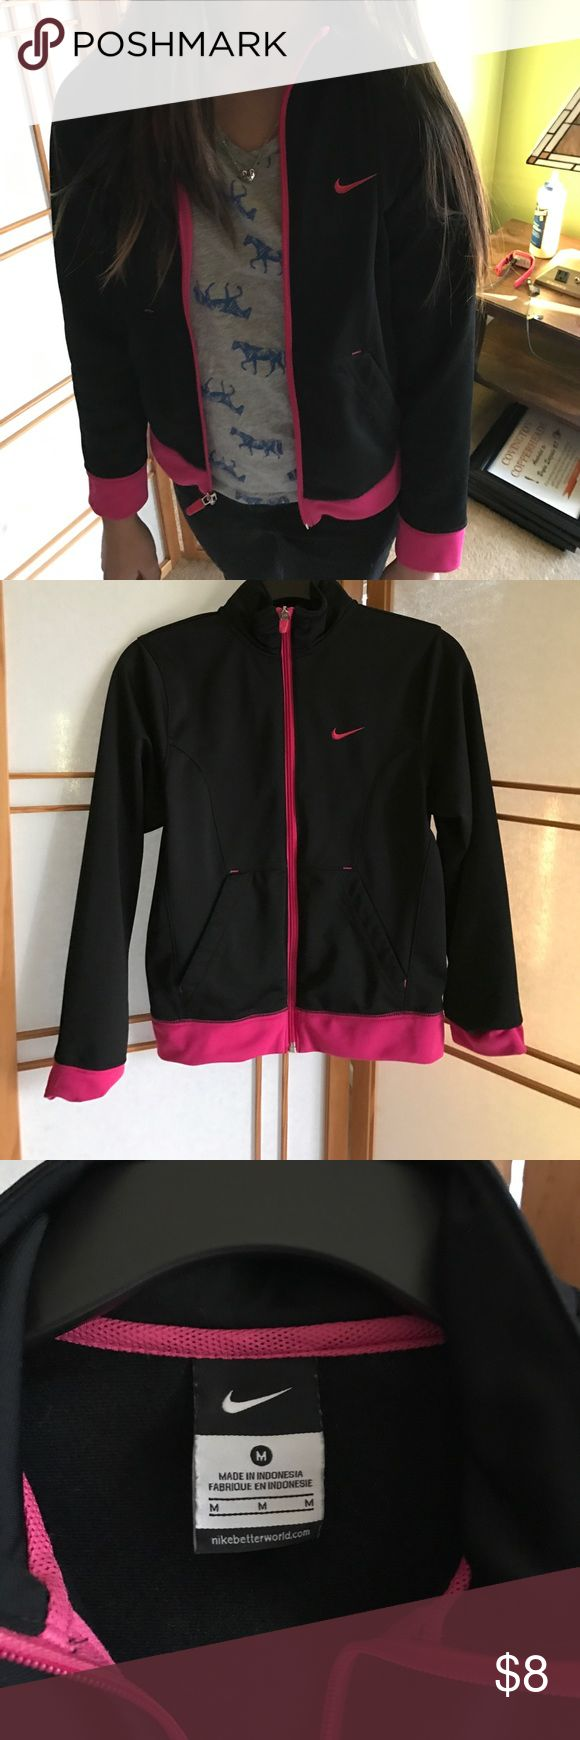 Nike sport Jacket Black/pink junior Girl Sport jacket/ cute / Nike  / too small for my girl . Size: medium. Barely used. Nike Jackets & Coats Utility Jackets